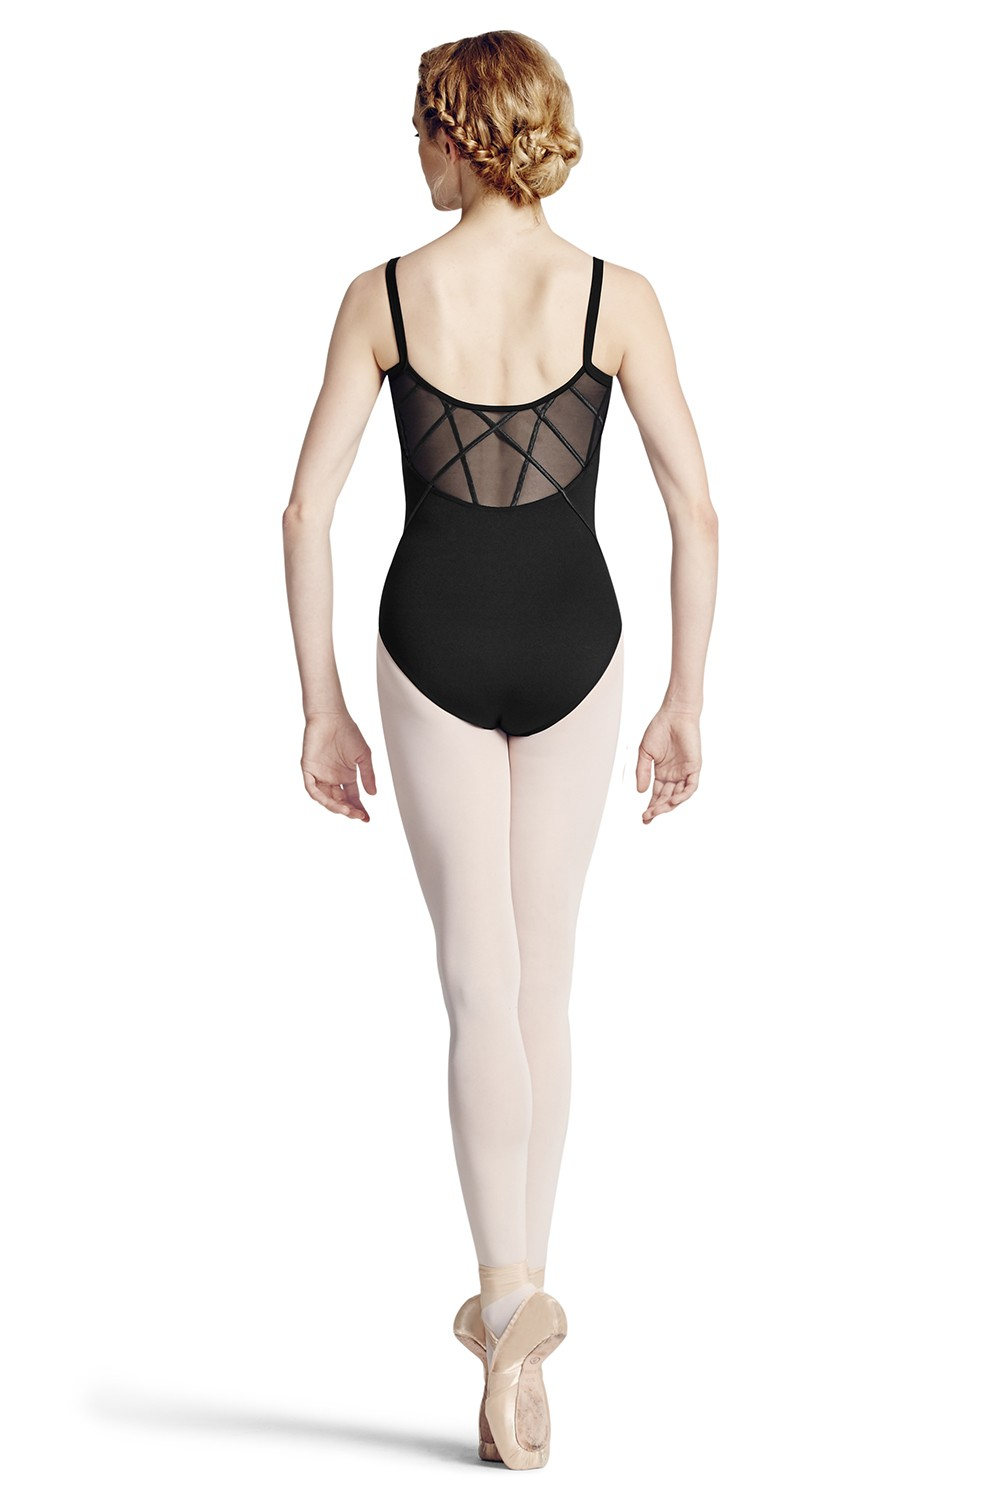 Deneb Womens Camisole Leotards